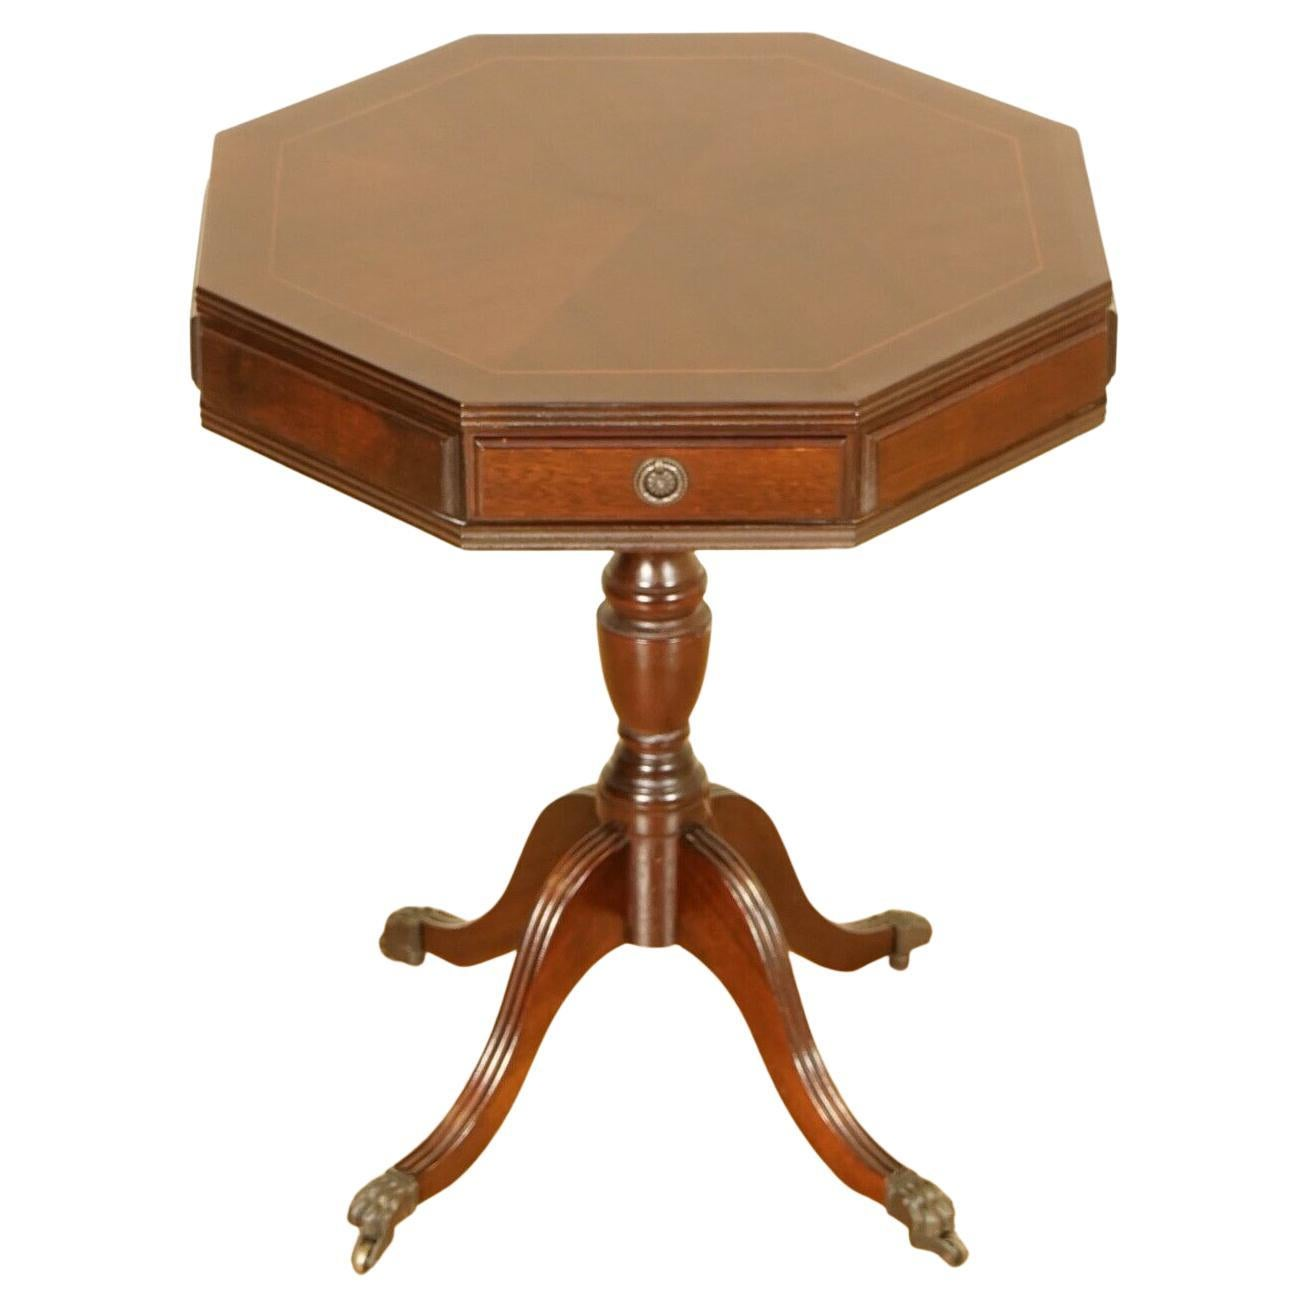 Stunning Flamed Mahogany Drum Side Table with Two Drawers